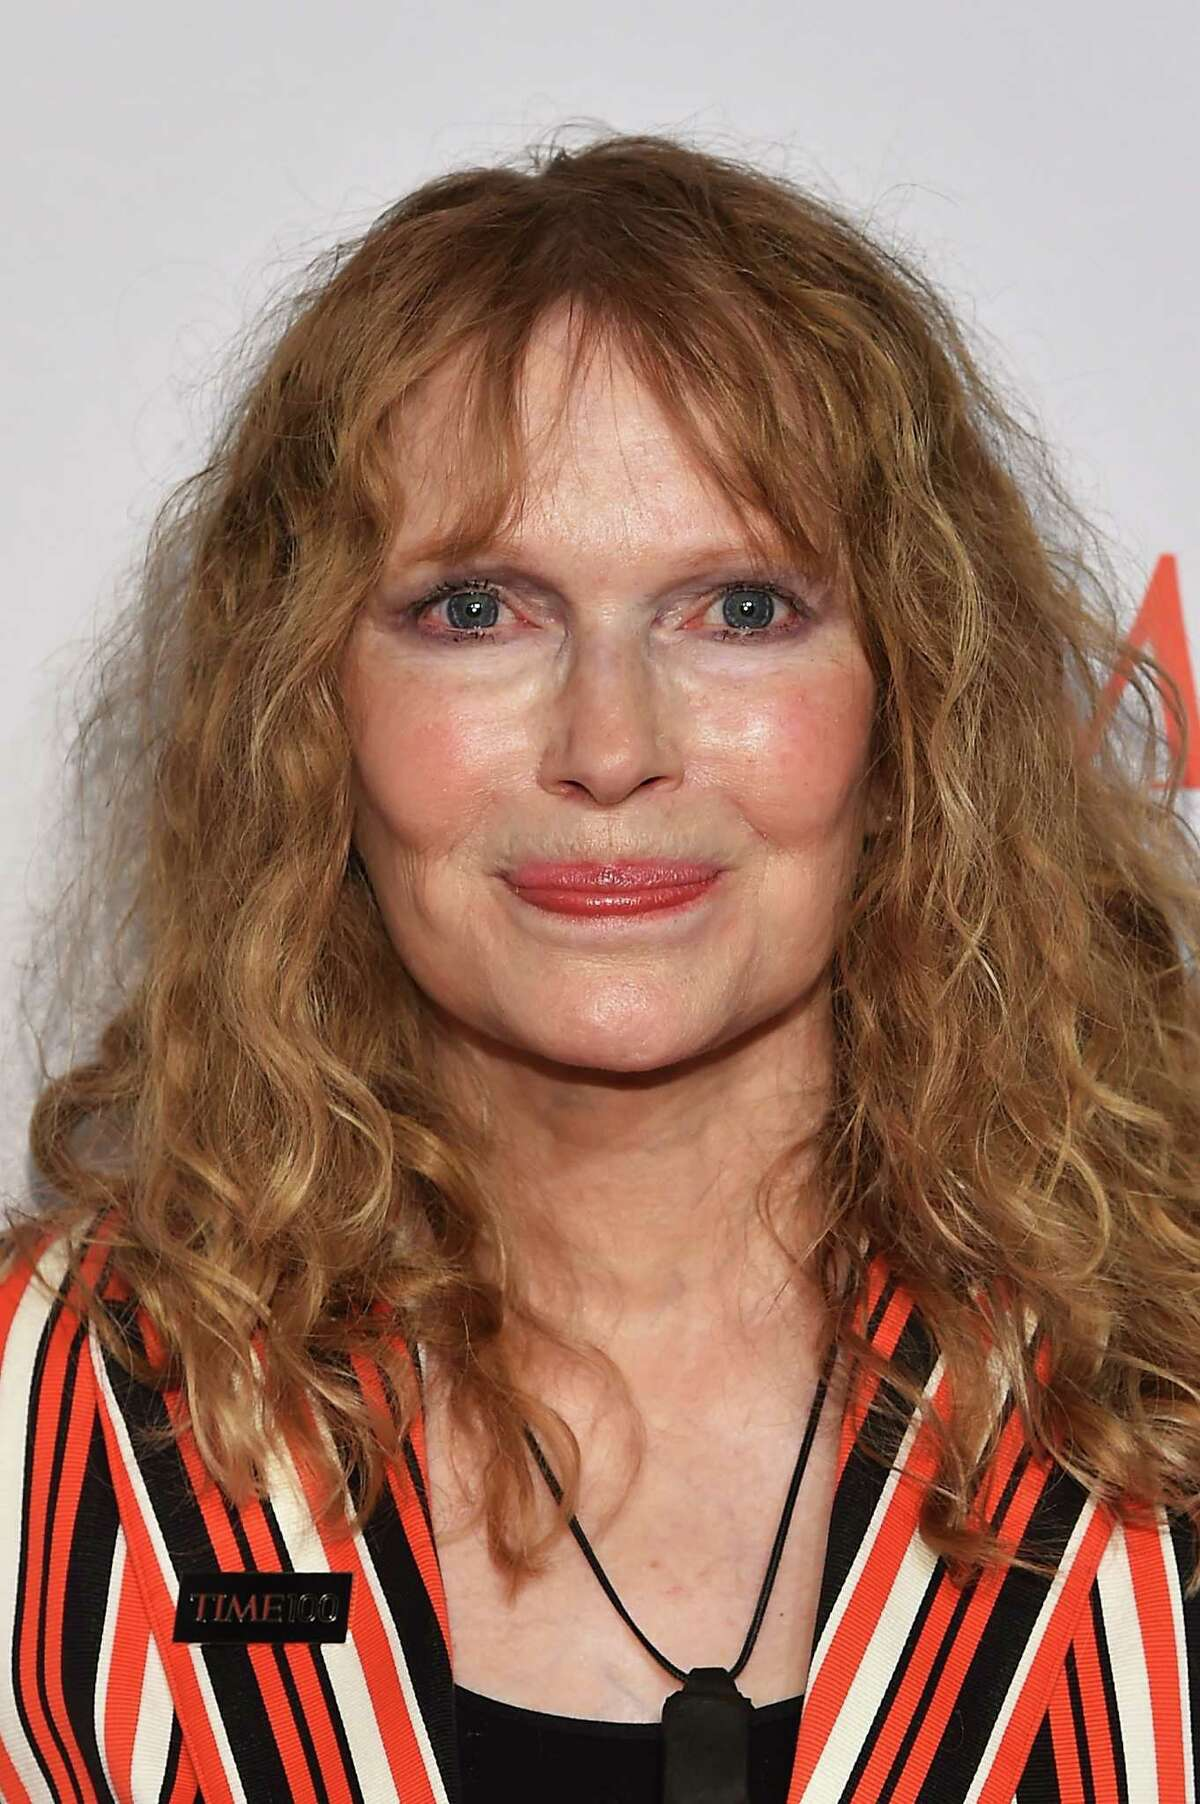 Mia Farrow attends the 2016 Time 100 Gala, Time's Most Influential People In The World in New York City in April